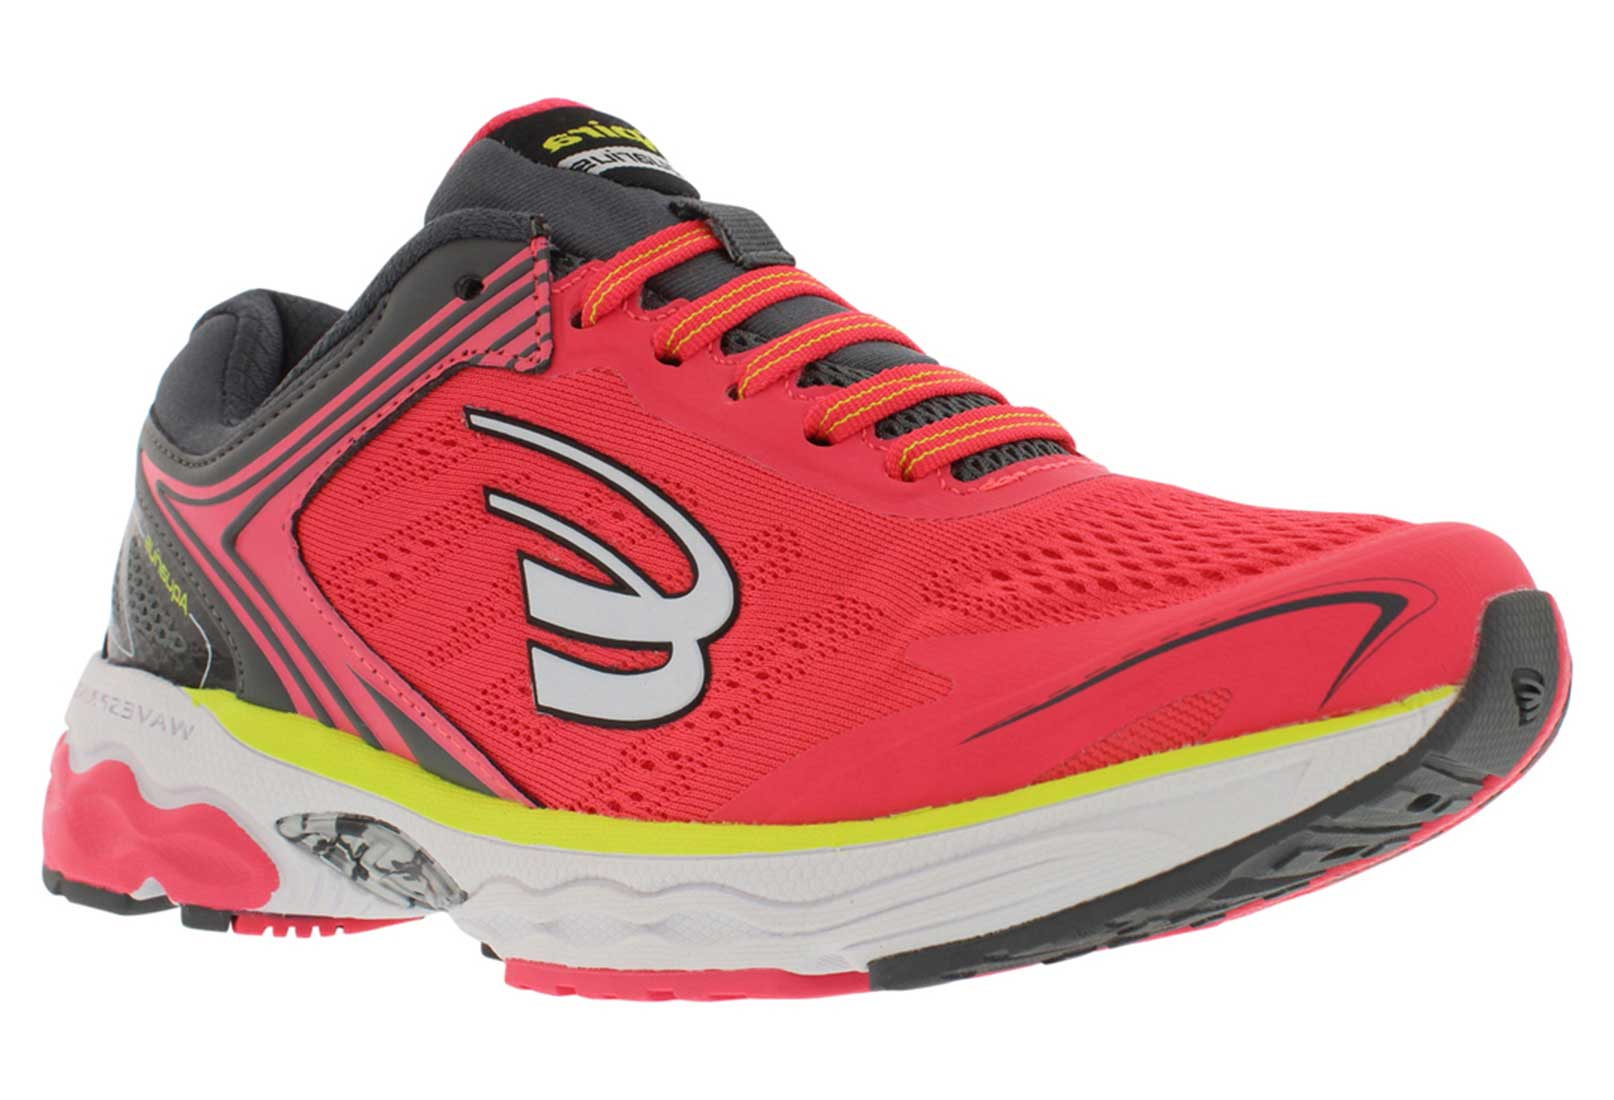 Spira Footwear - Womens Aquarius Running Shoe